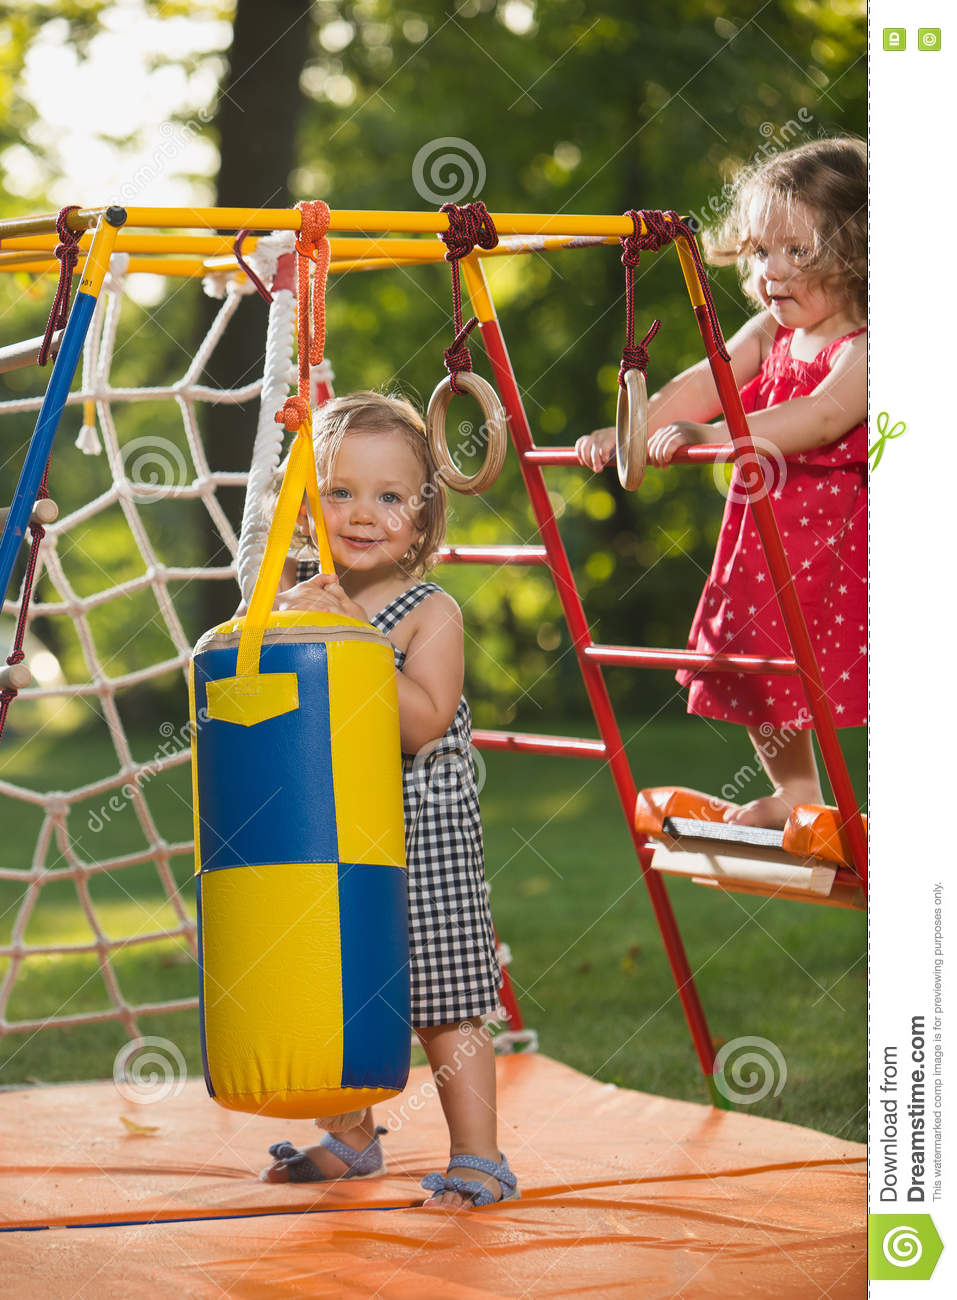 The two little baby girls playing at outdoor playground